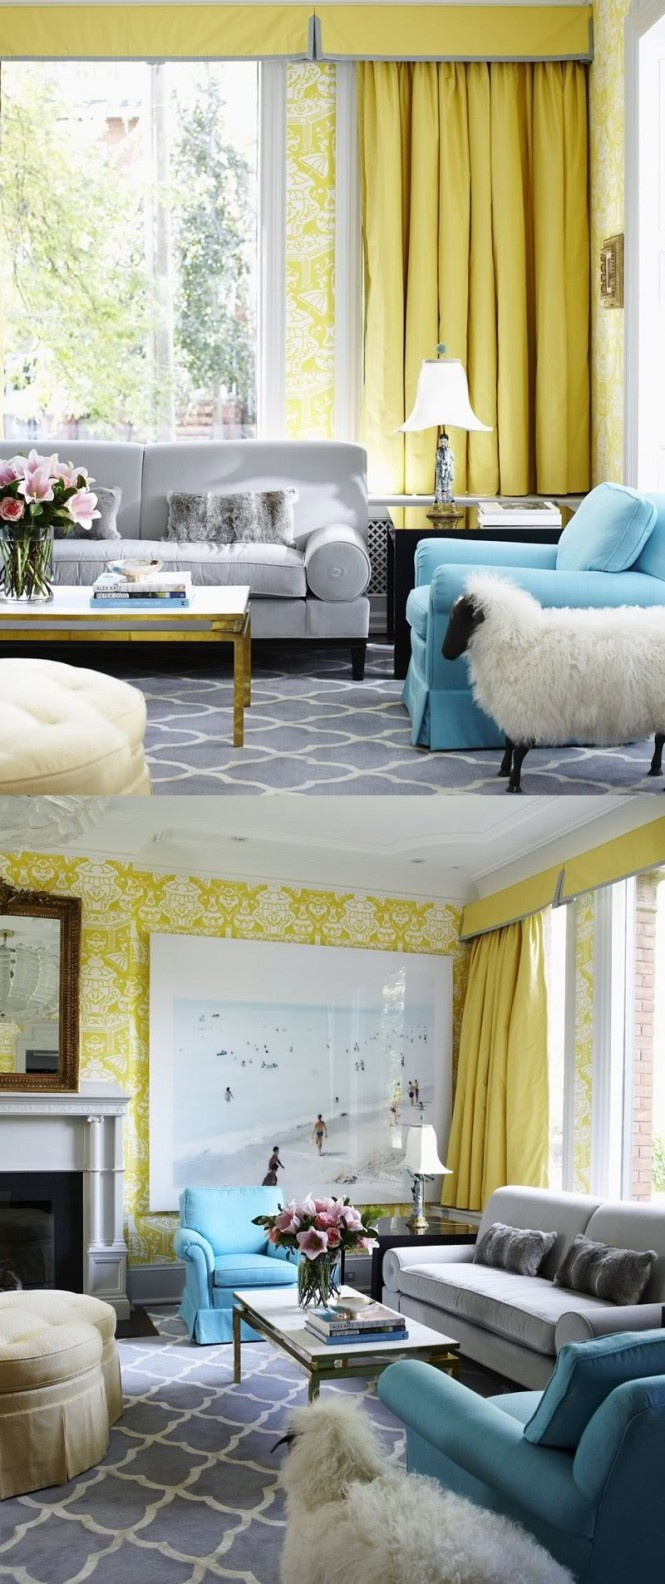 Yellow room interior inspiration 55 rooms for your viewing pleasure - Grey and blue living room ...